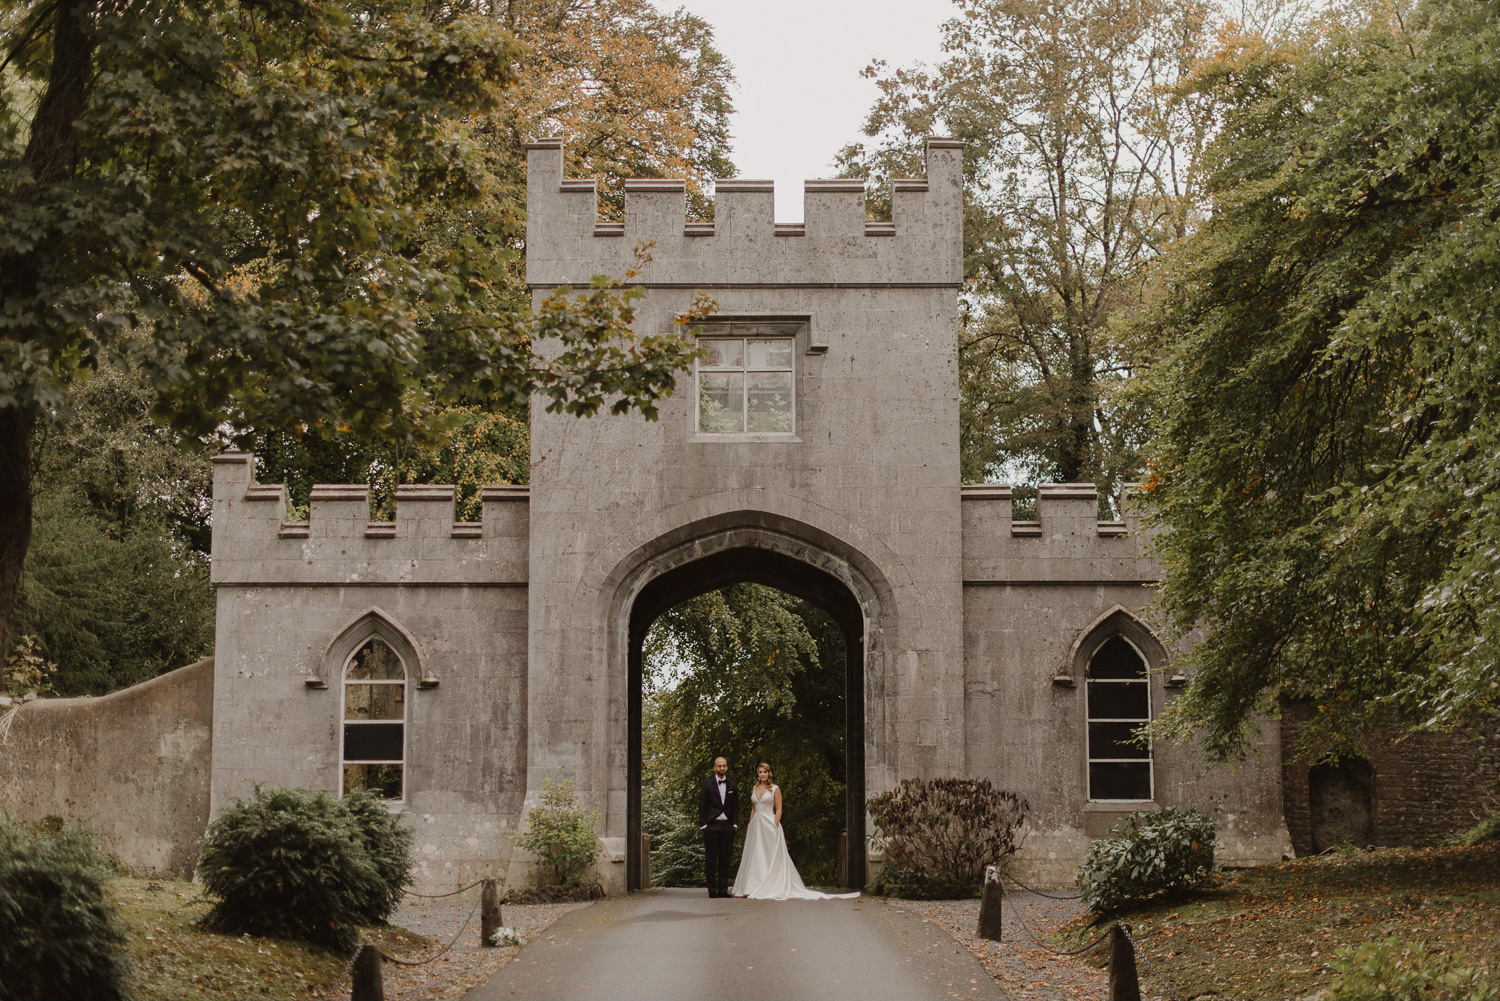 Markree Castle - Markree Castle is a luxury Irish castle wedding venue located on the Wild Atlantic Way in County Sligo. Recently renovated in 2017 this venue is absolutely breathtaking. The castle has all the character and charm that you would expect from a 17th Century historic building and then some. The interiors of the castle are stunning and the bridal suite is absolutely outstanding. With the Dartry mountains in view, accompanied by rolling hills and rivers, this really is a special place to get married in Ireland.